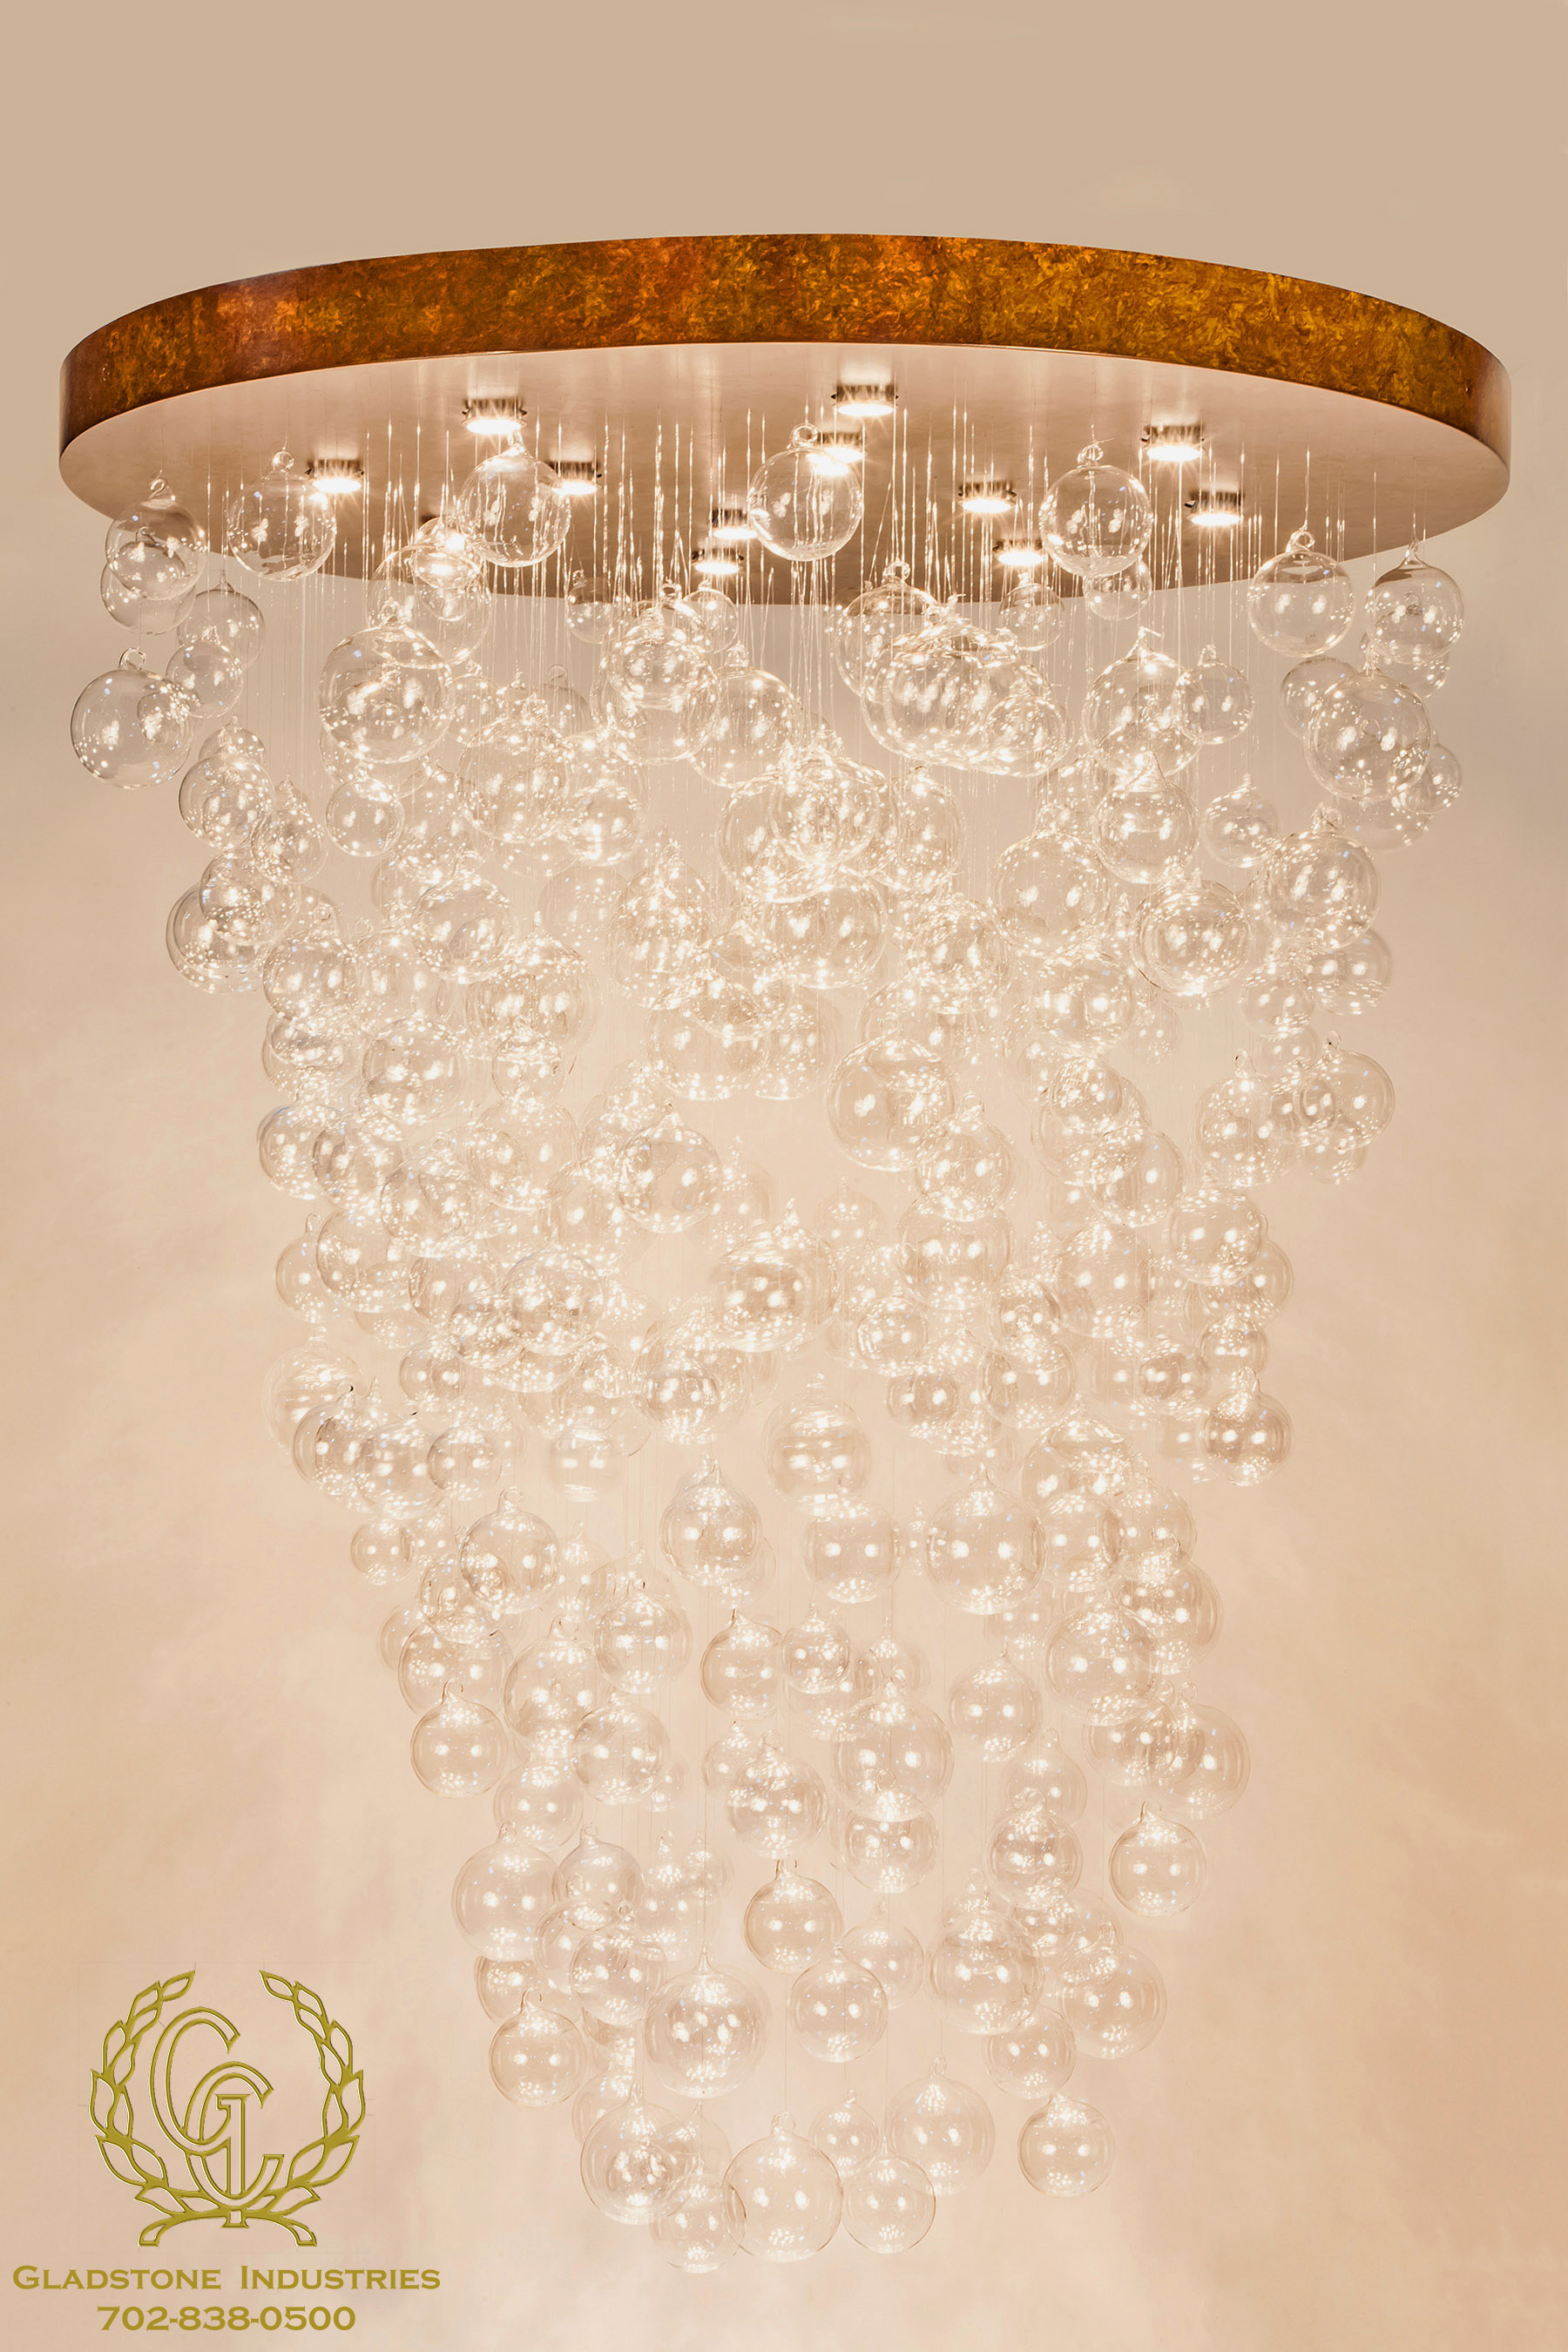 Chandelier and Pendants - Gladstone Industries Corporation